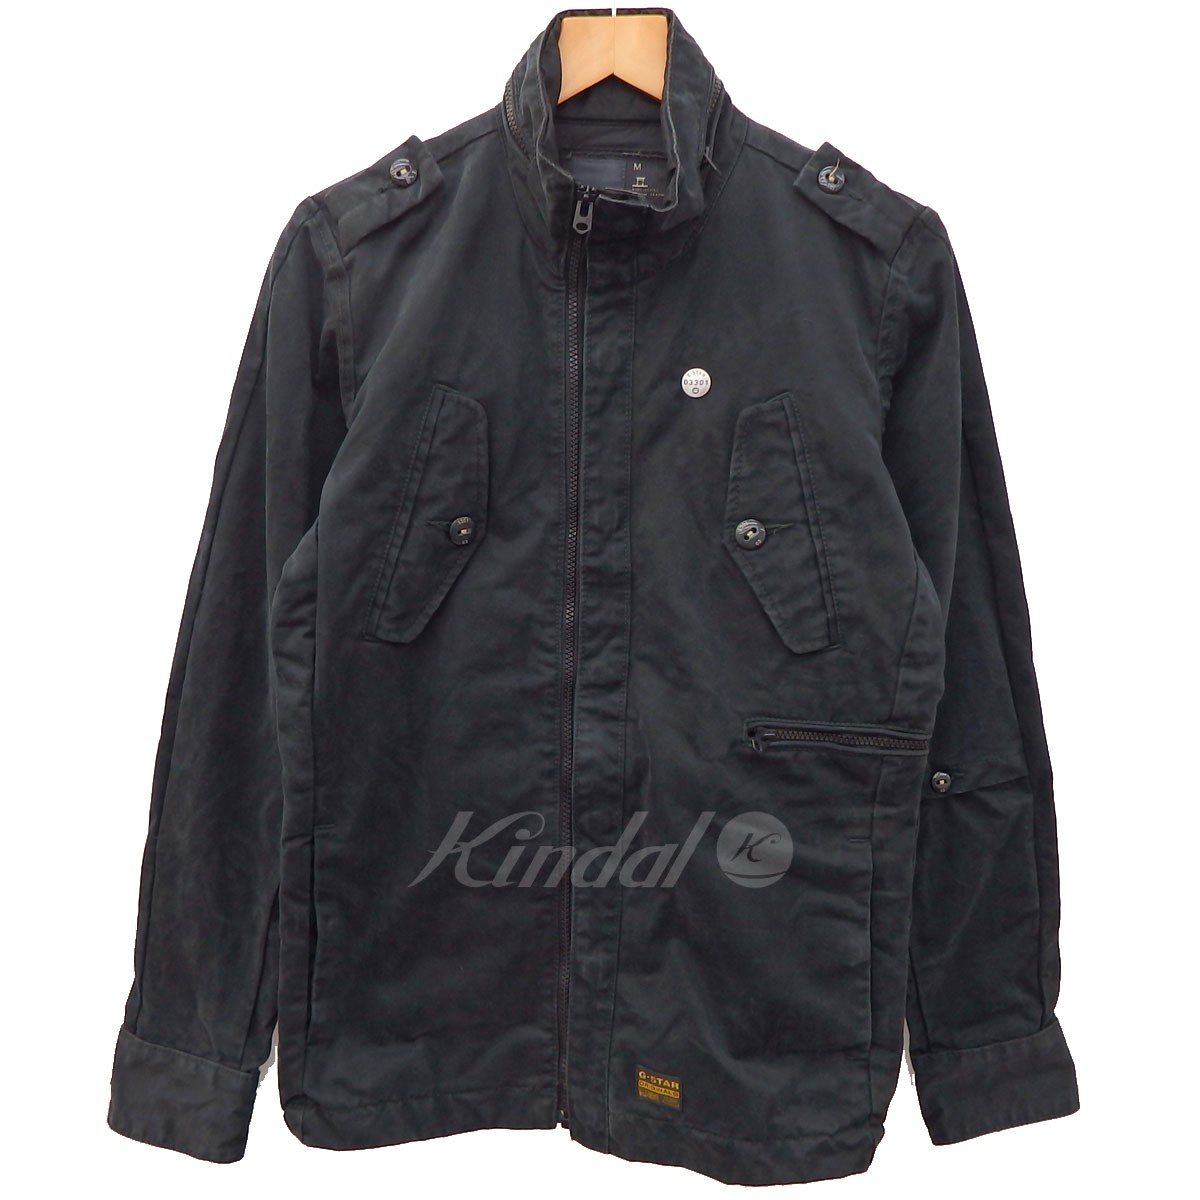 0d042b53e69 kindal  G-STAR RAW MARKER SHIRT L S zip blouson black size  M (G ...